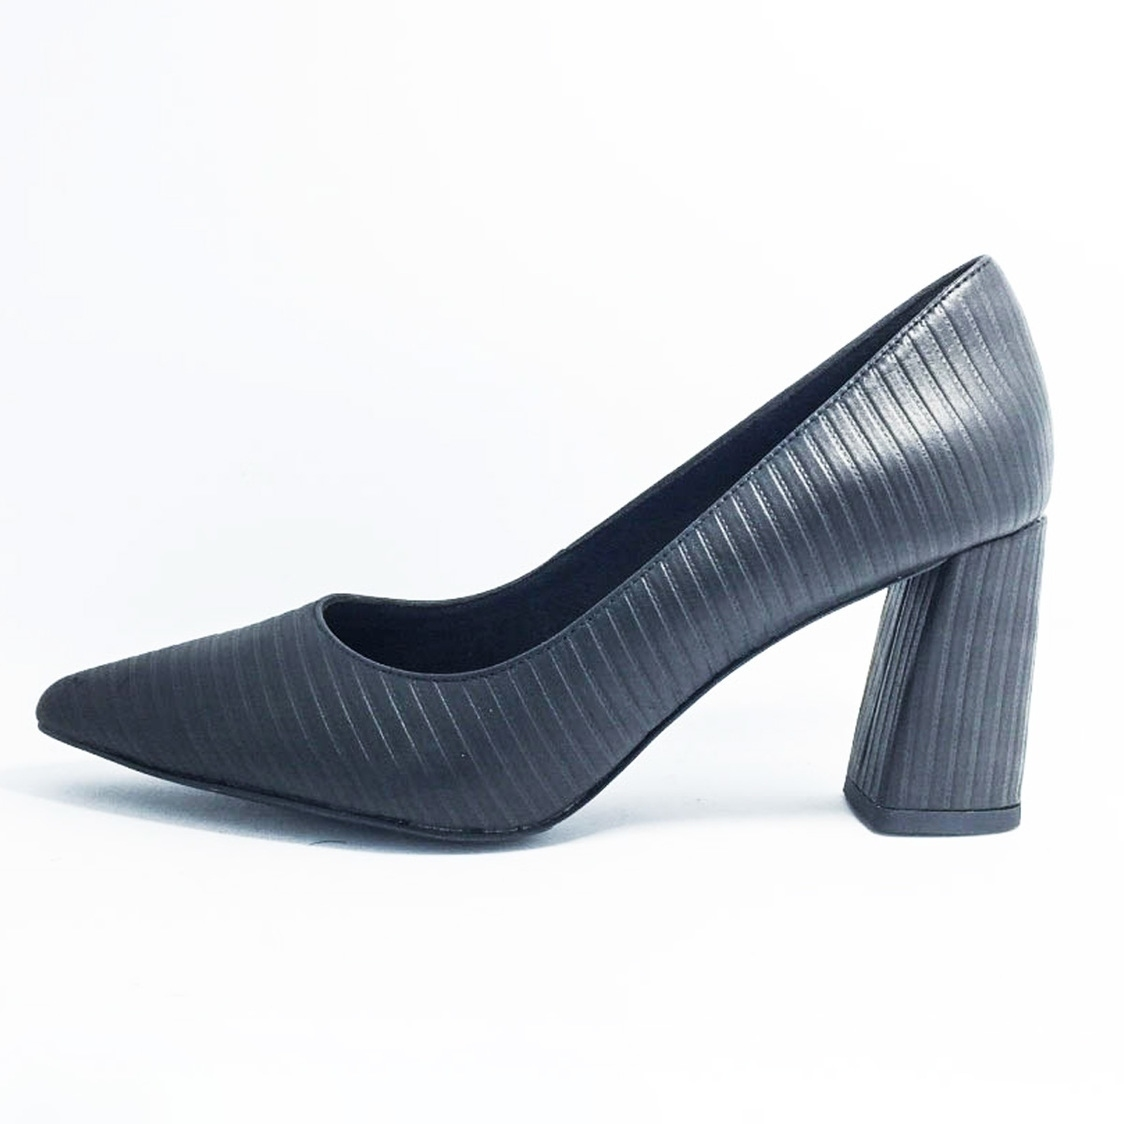 3 Pointed-Toe Courtshoe in Black